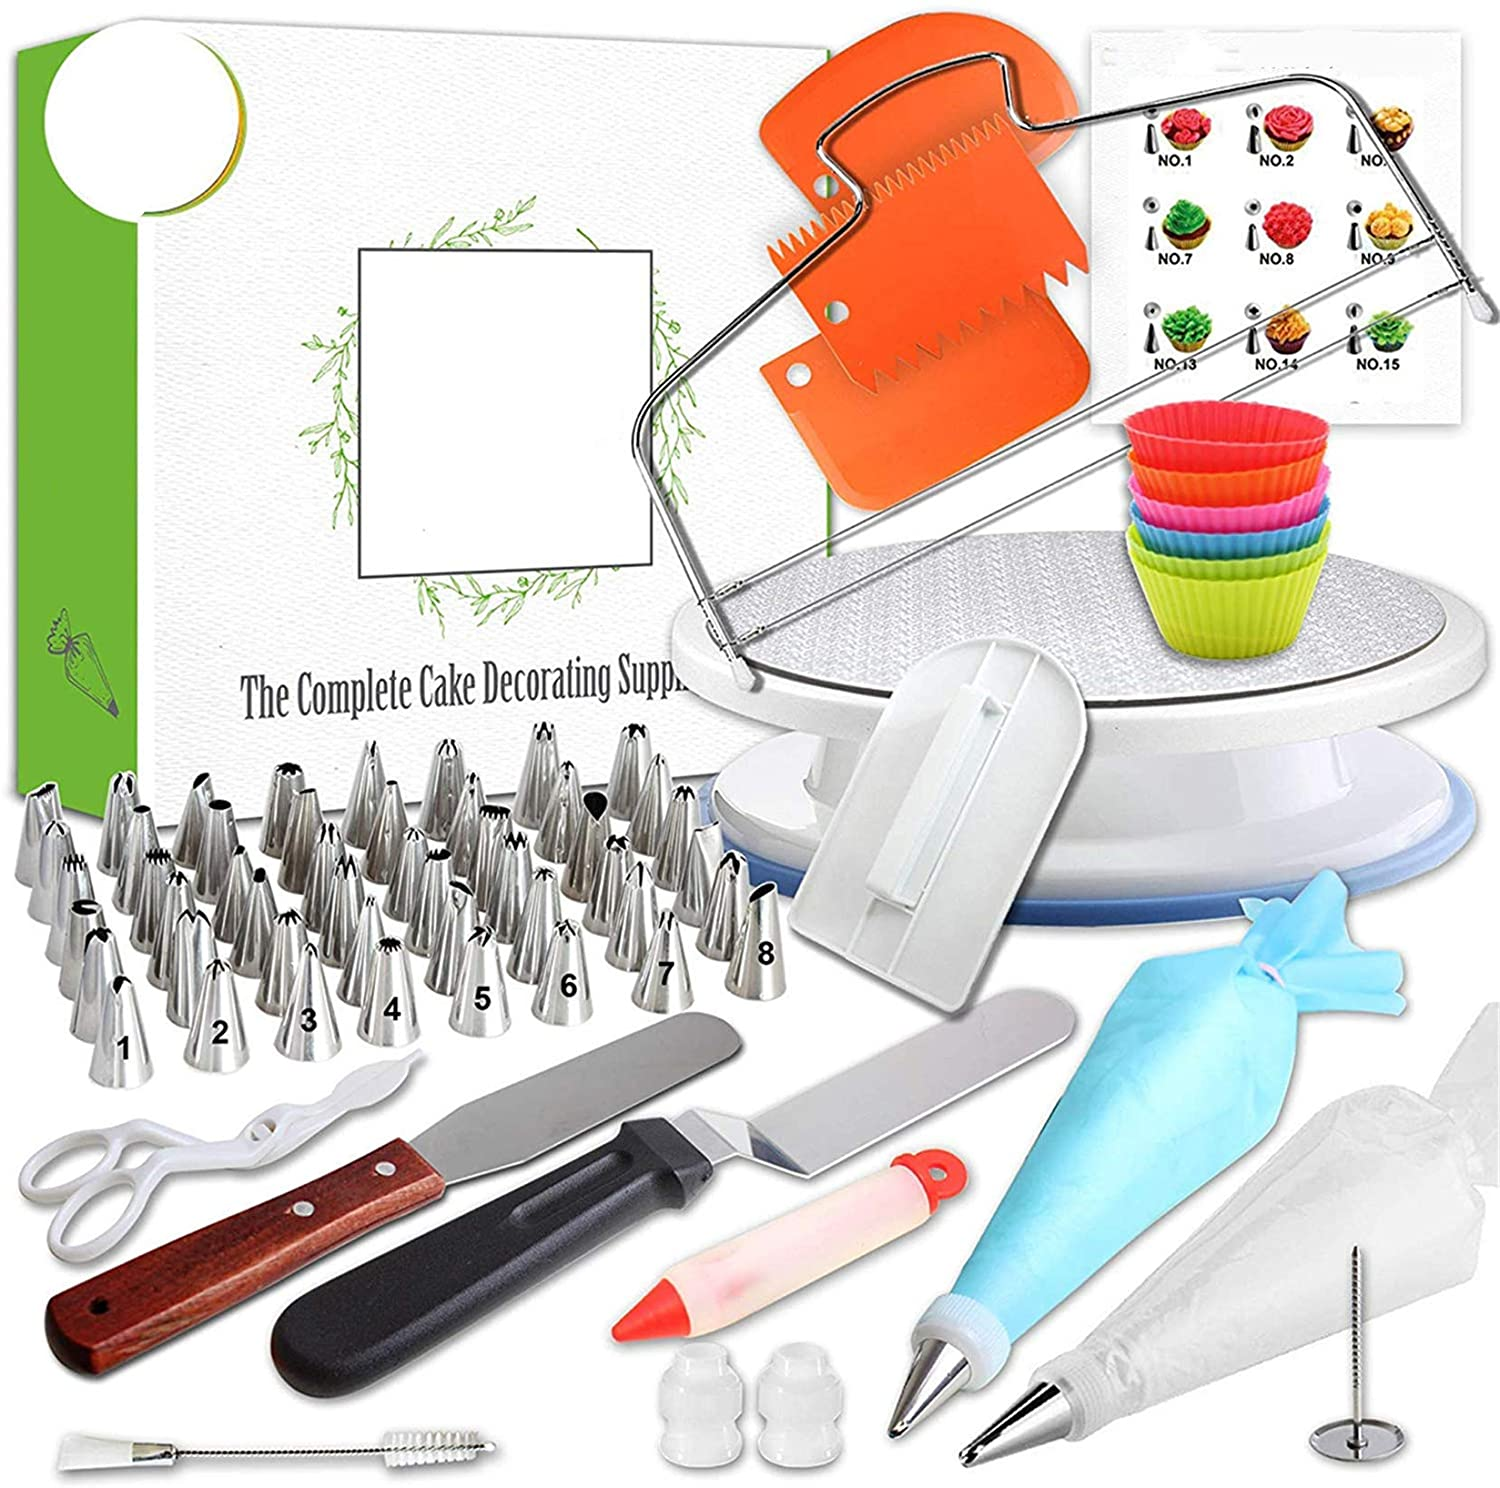 Cake Decorating Supplies Kit, FantasyDay 48-Piece Piping Nozzles Icing Tips with 20 Disposable Bag, 2 Icing Spatula, 3 Scraper, 2 Coupler, 1 Pen, 1 Smoother, 6 Cupcake Mould, Rotating Turntable Stand